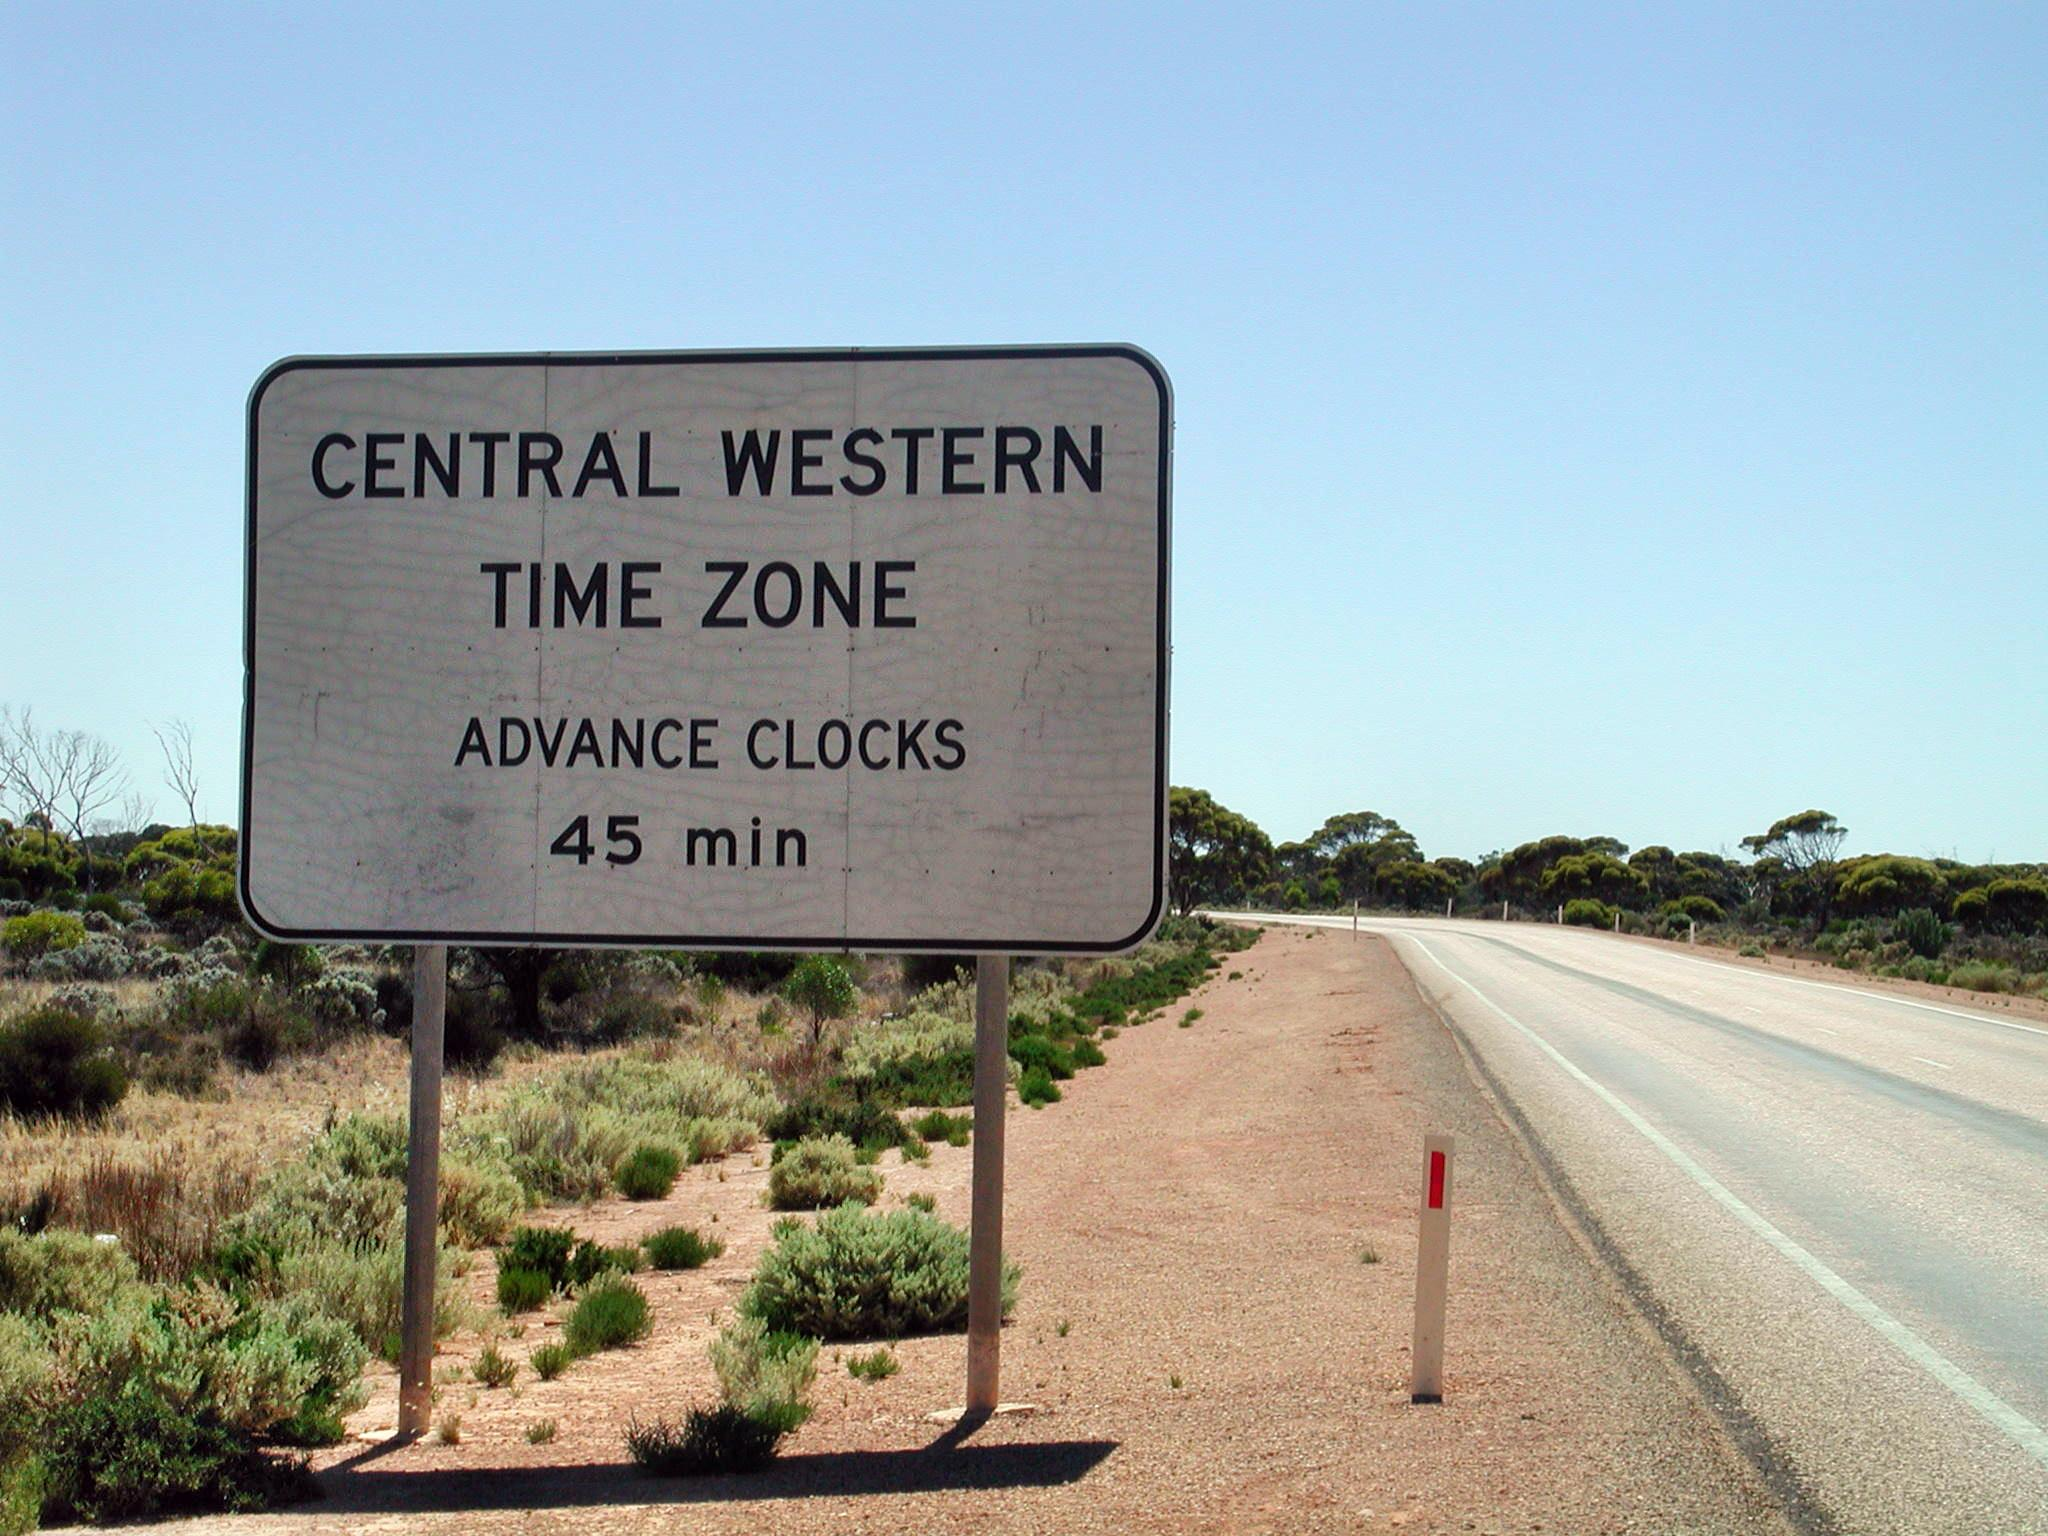 Entering Central Western Time Zone. Photo by Groogle [CC BY-SA 4.0 (https://creativecommons.org/licenses/by-sa/4.0)], via Wikimedia Commons